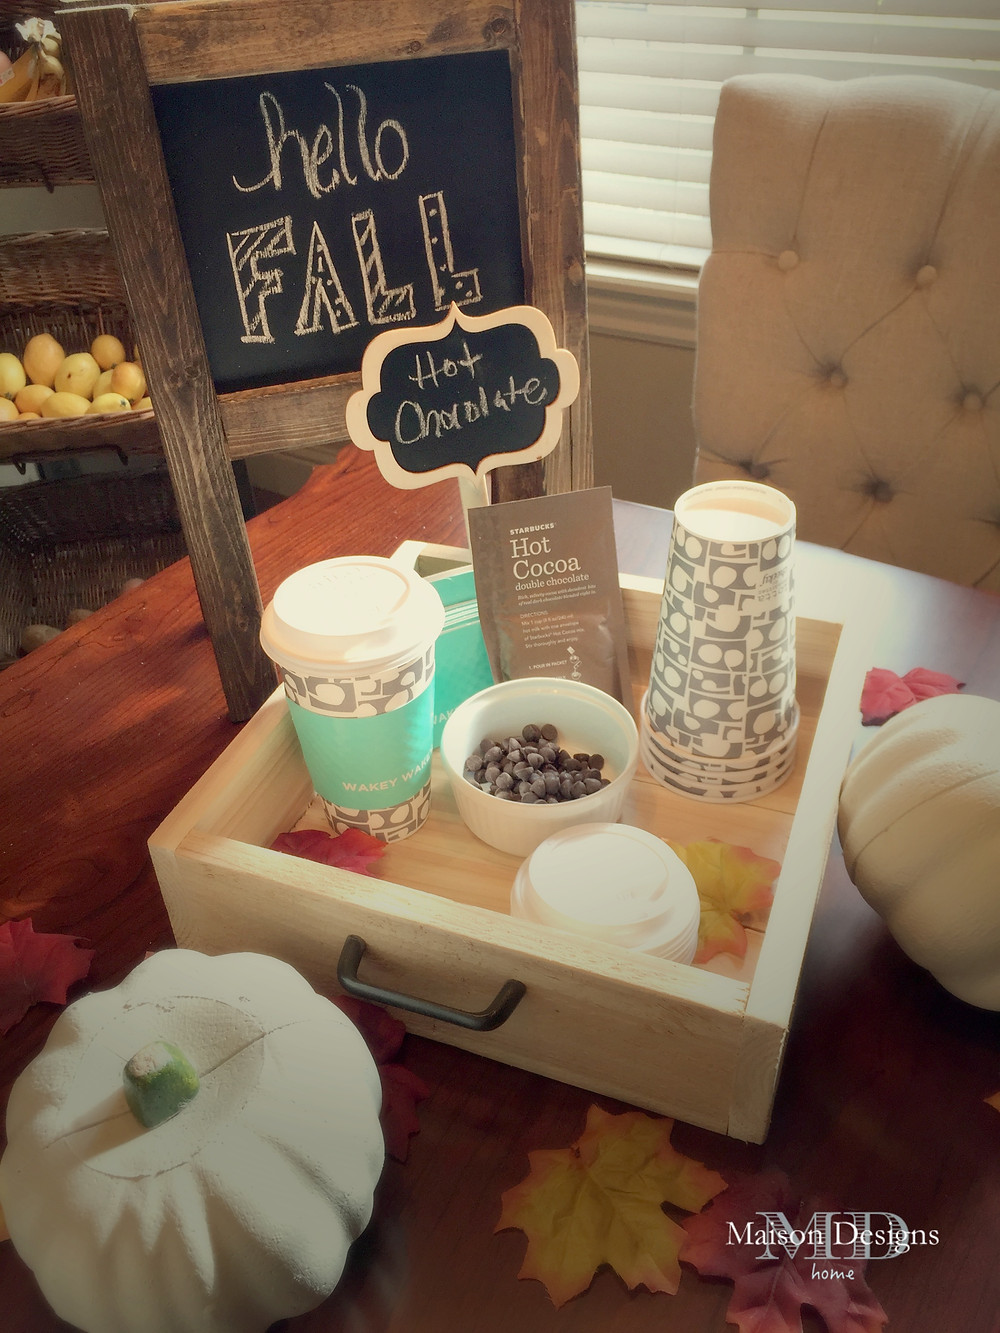 Fall Decor Ideas-Maison Designs Home